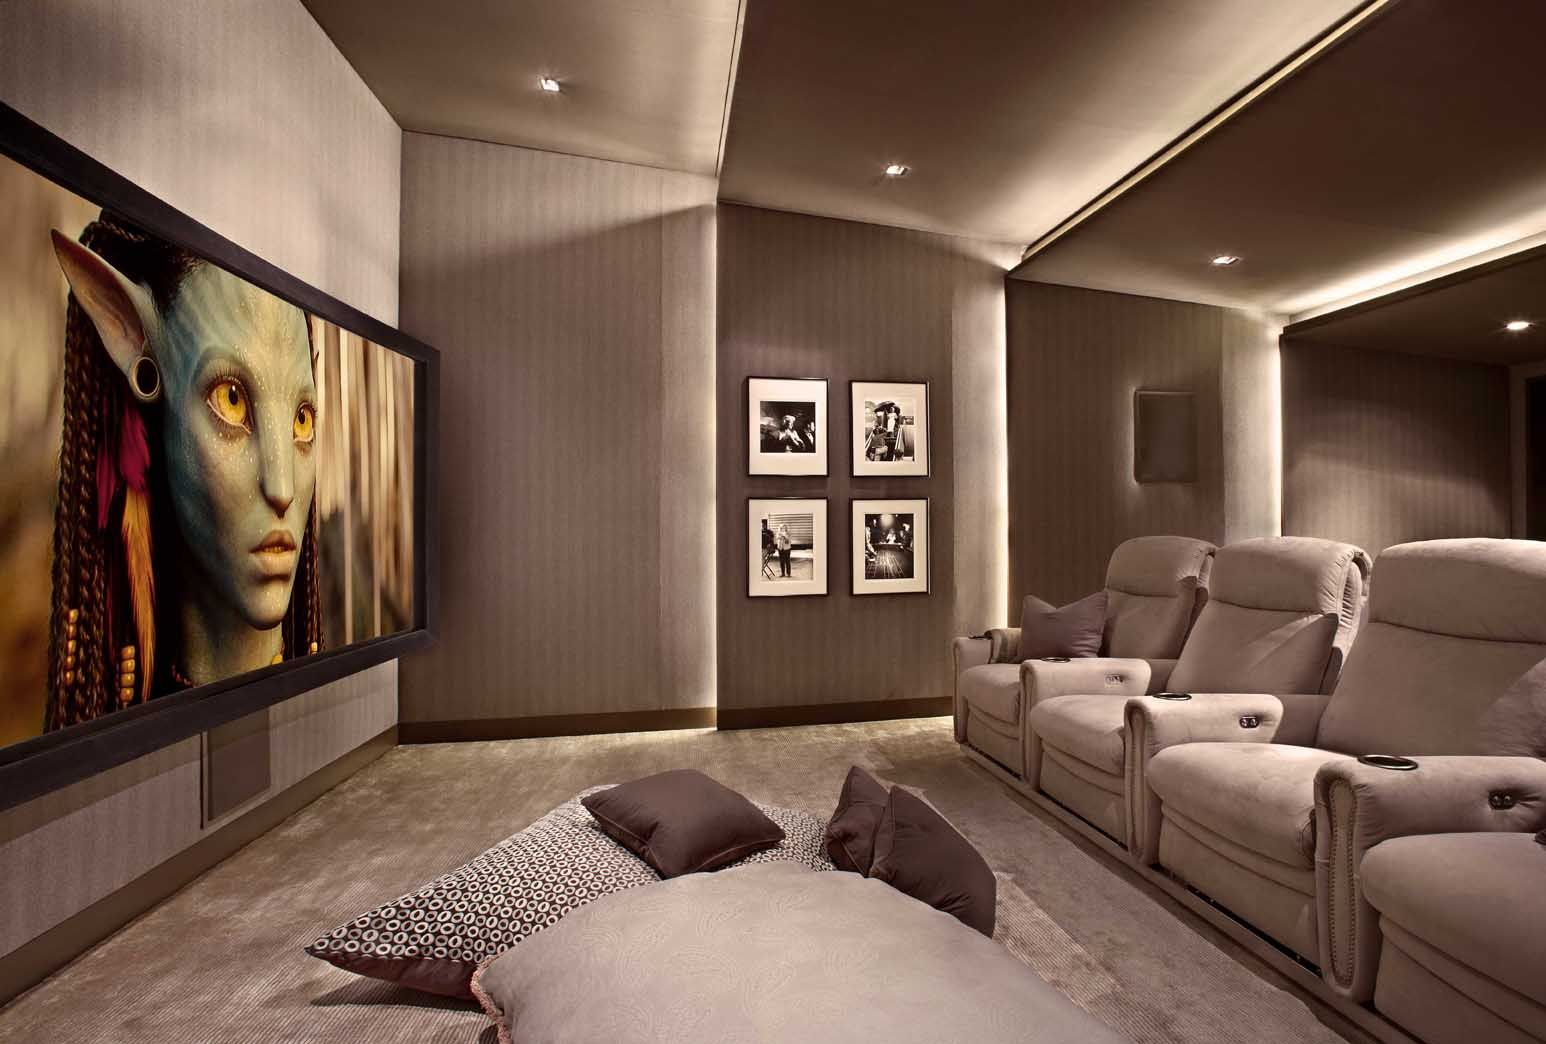 Lower Storey Cinema Room #hometheater #projector Home Theatre, Surround  Sound, Plasma Tv, Recliner Sofa, Acoustics, Wall Paneling, Carpeting, False  Ceiling, ...